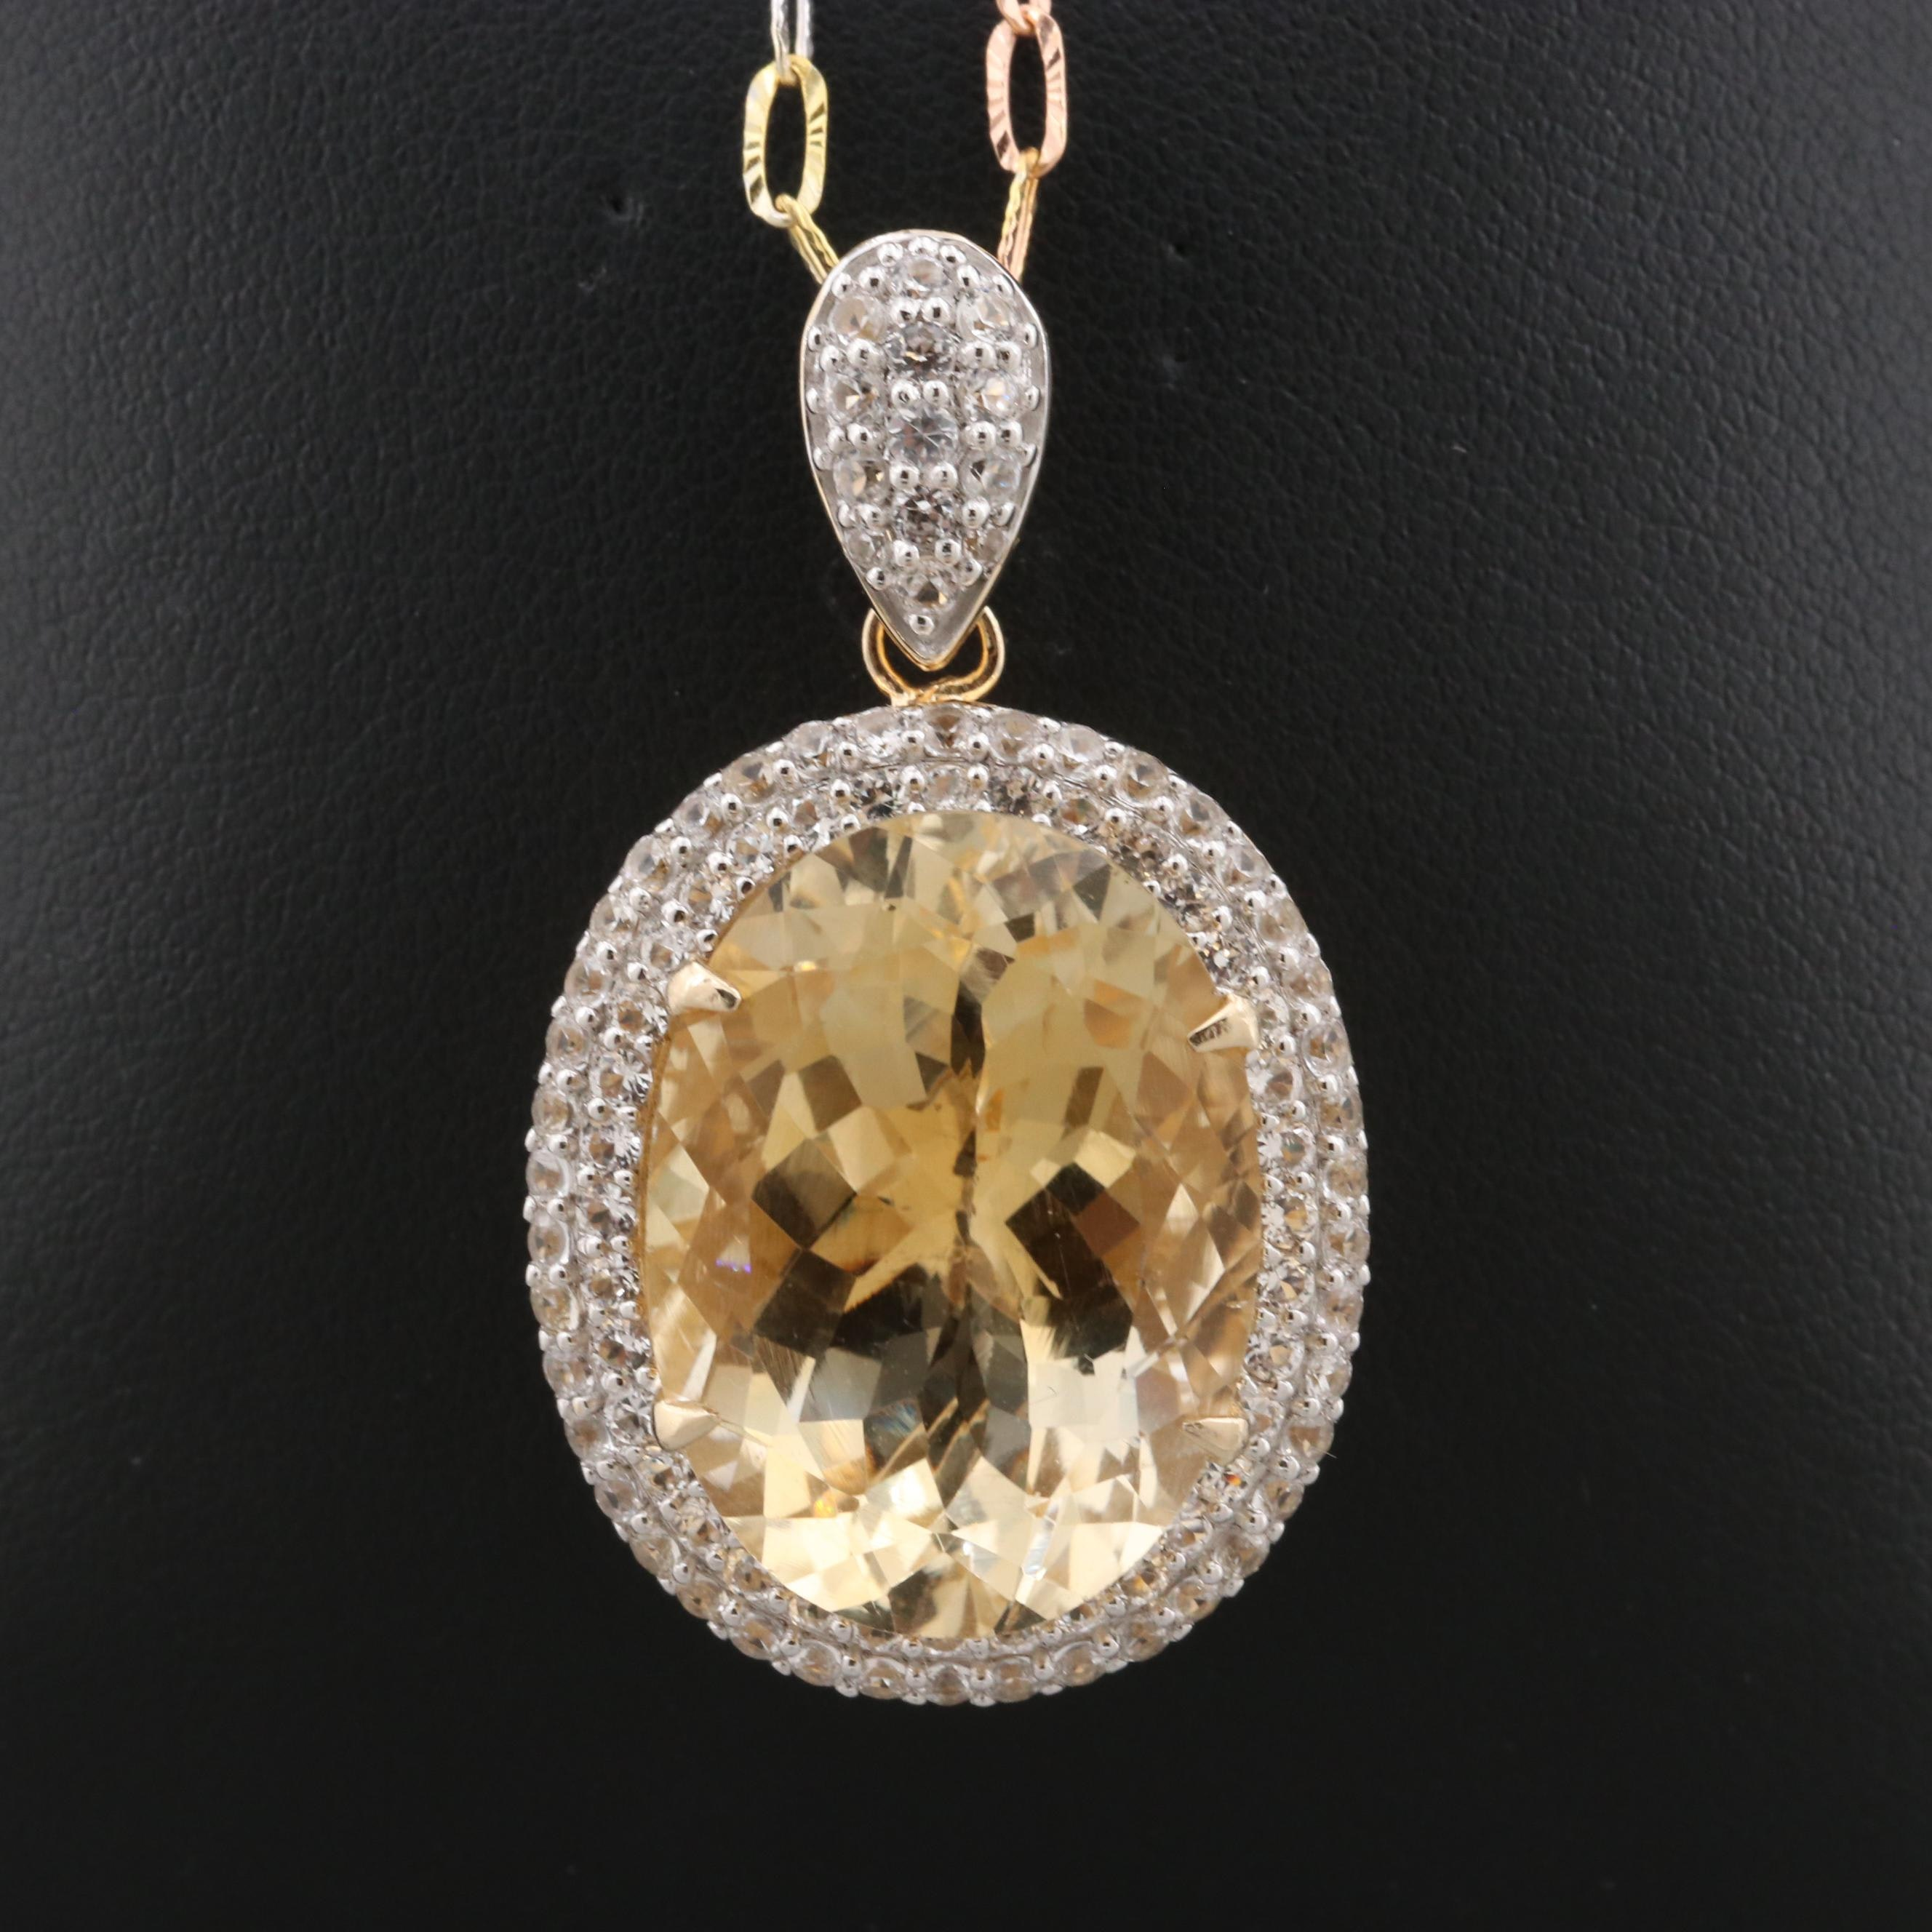 Tri-Color Gold Wash on Sterling Silver Citrine Pendant Necklace